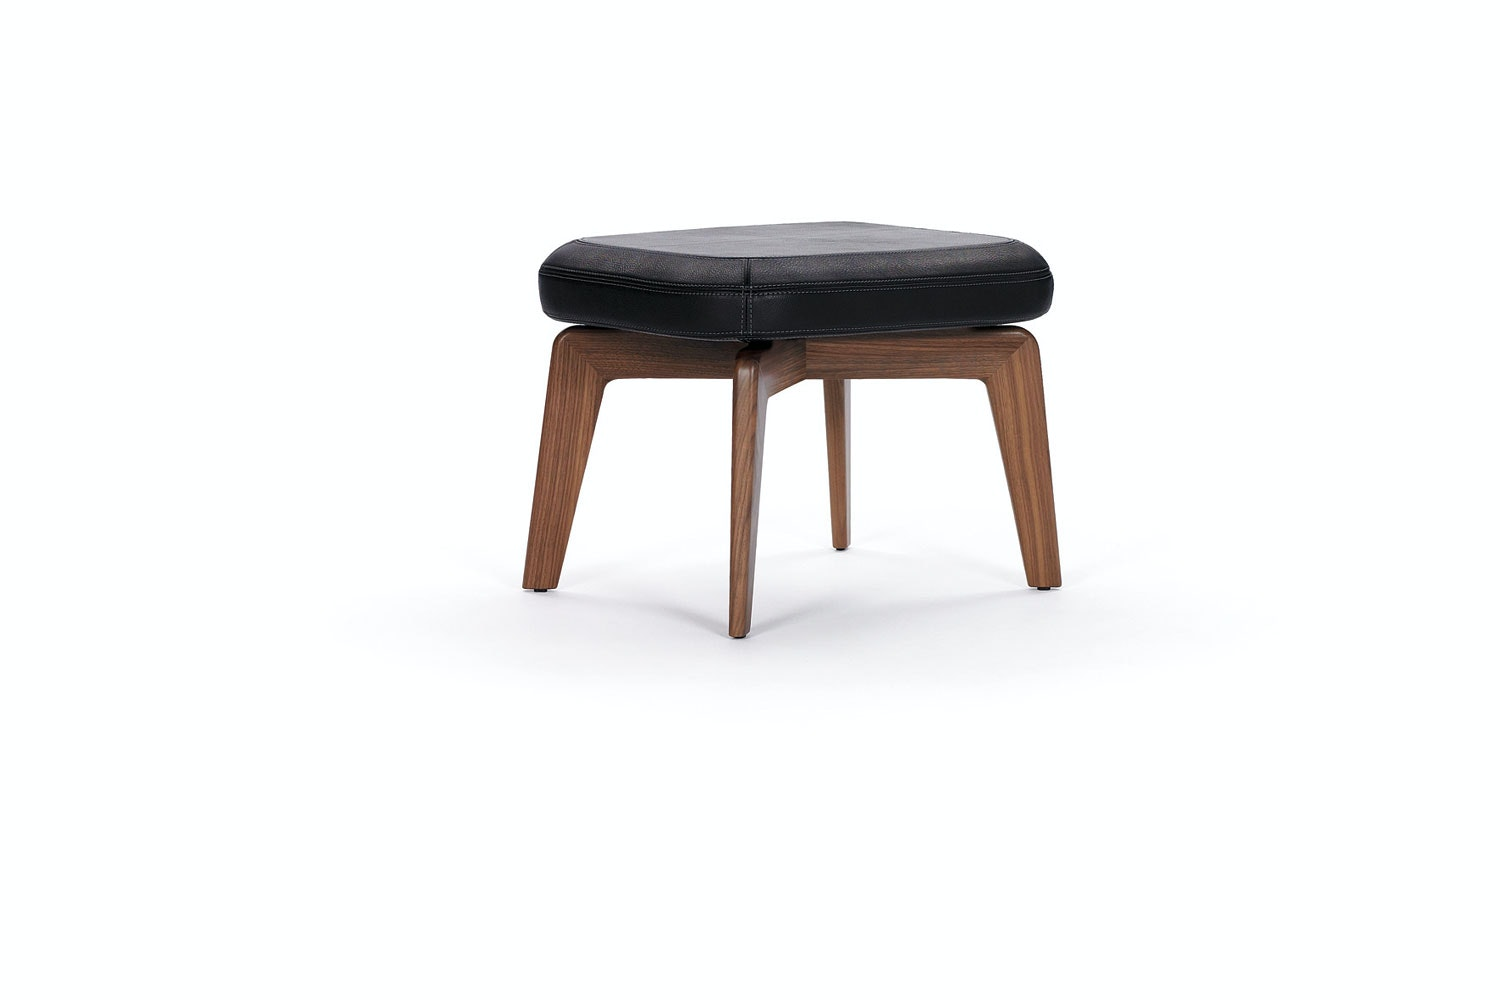 Munich Stool by Sauerbruch Hutton for ClassiCon